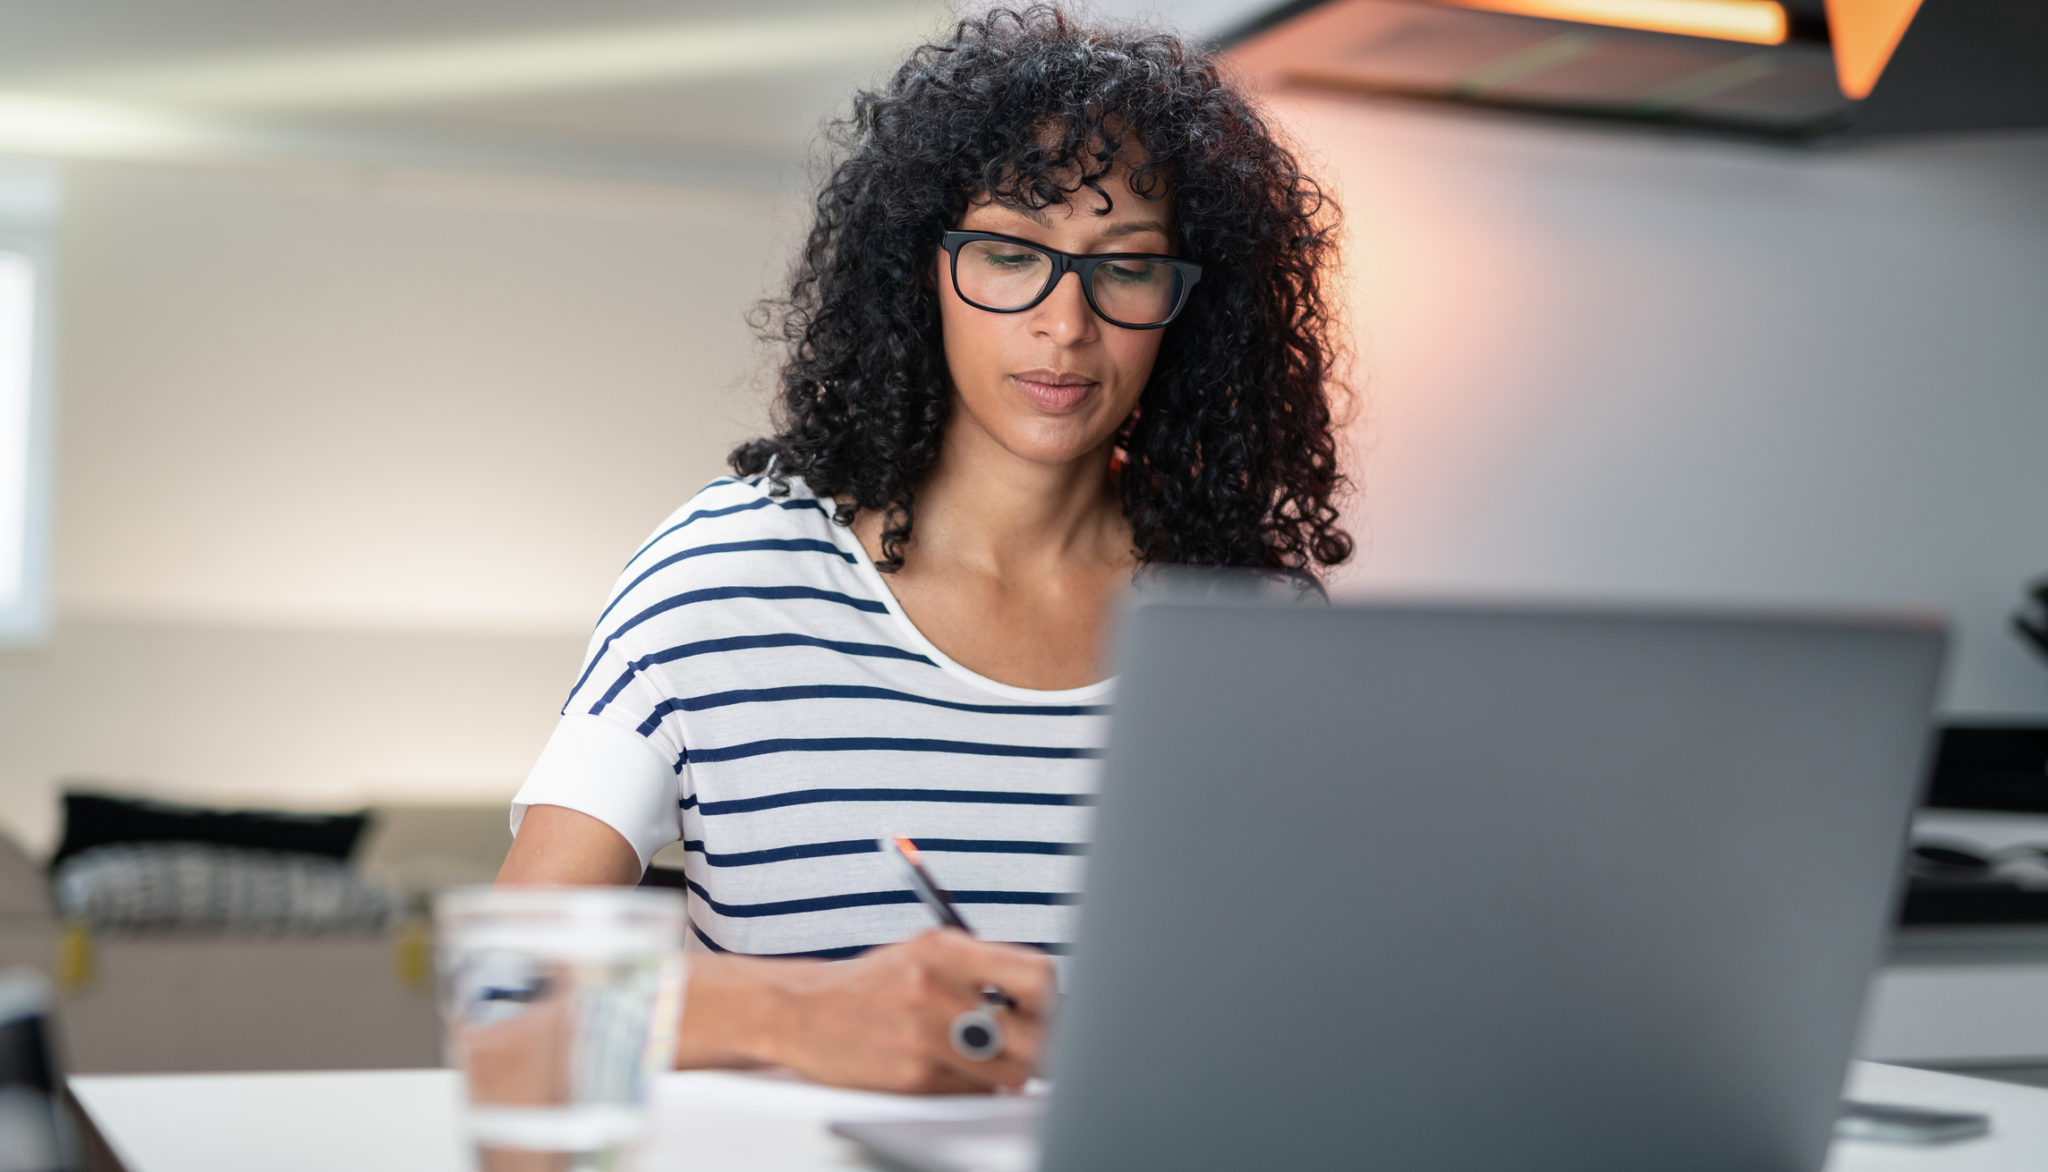 Woman paralegal student doing online classes